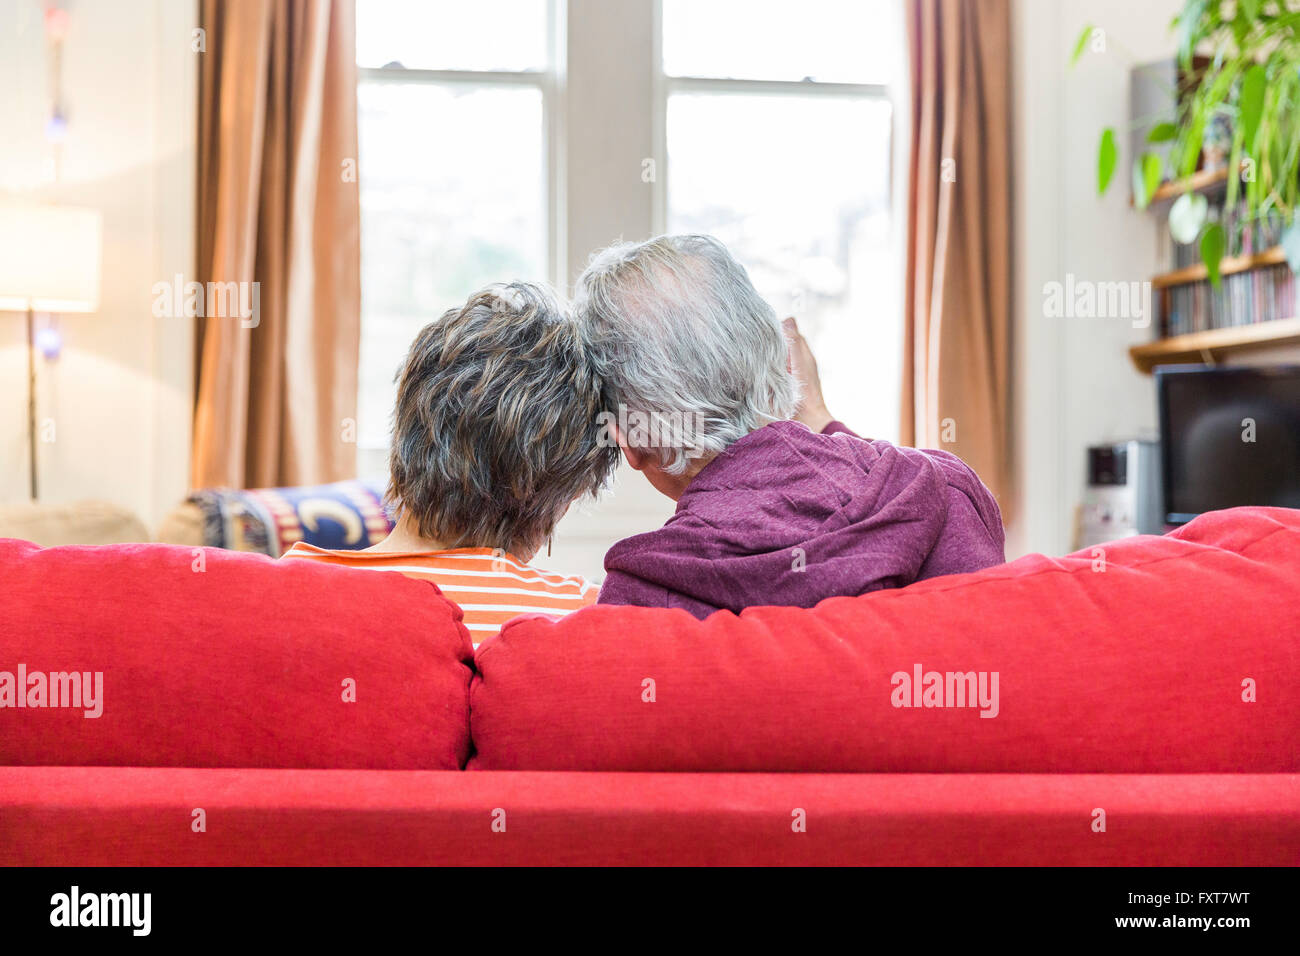 Rear view of romantic senior couple on living room sofa with heads together - Stock Image